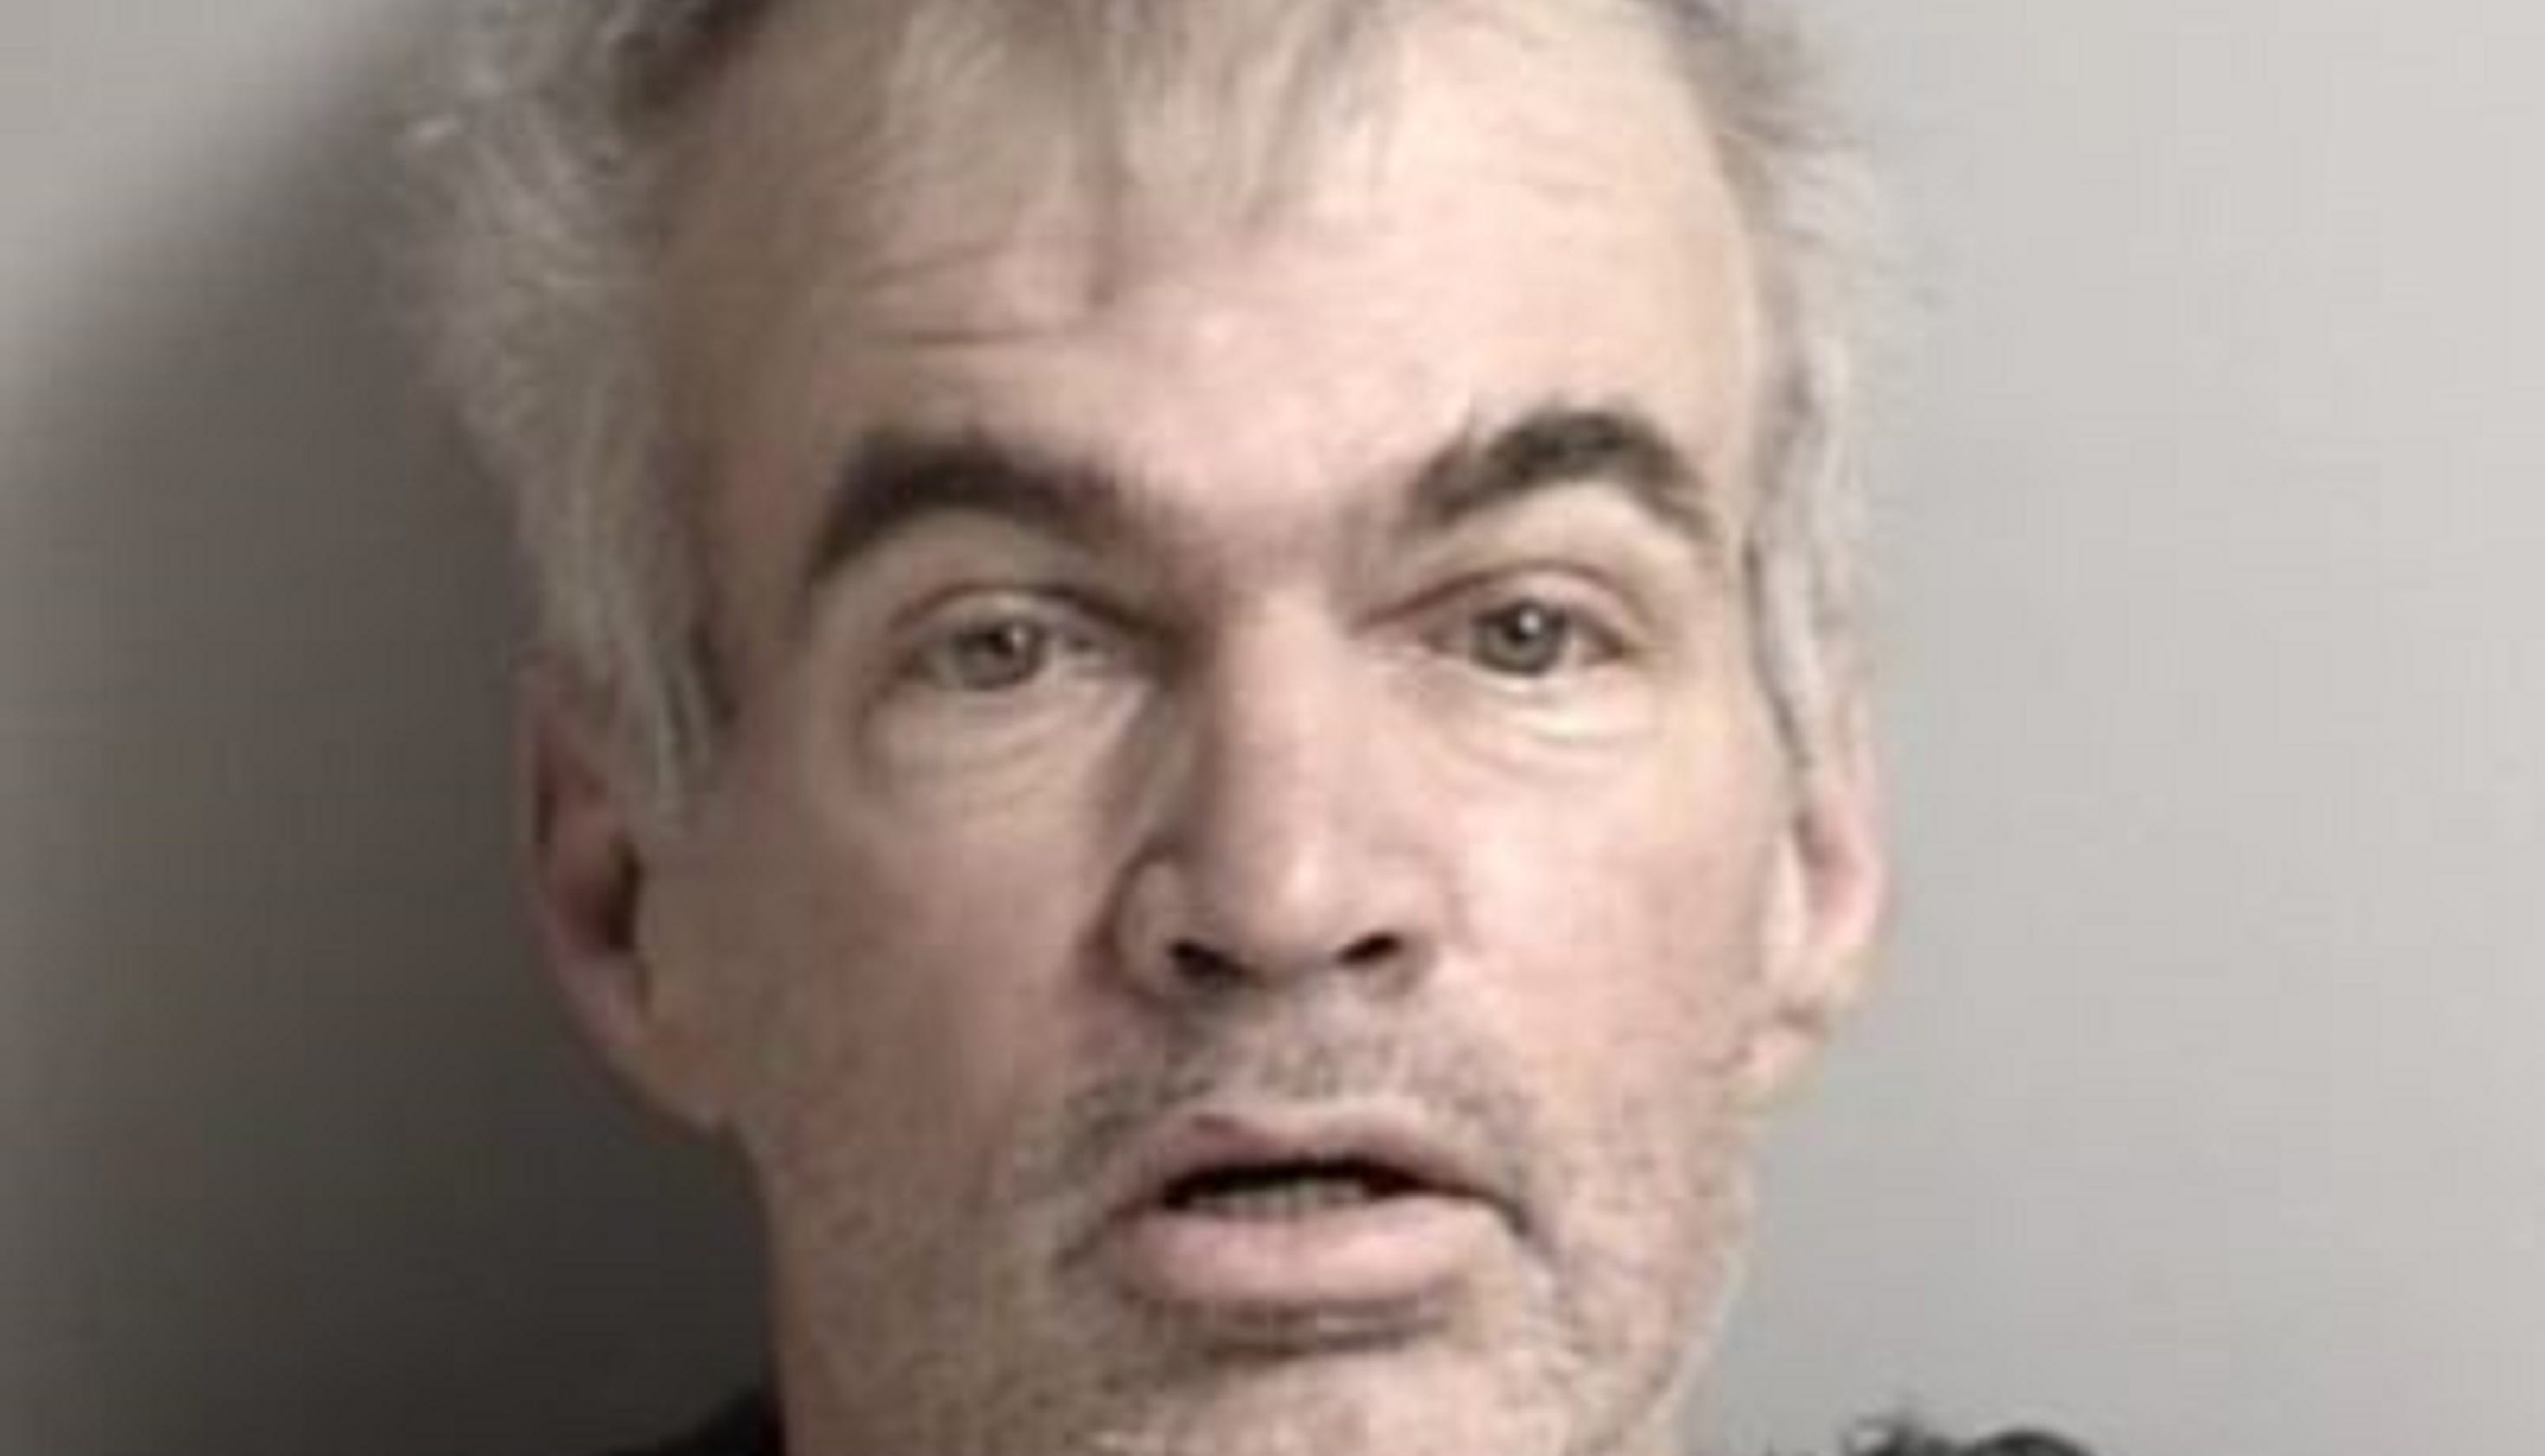 South Lake Tahoe man faces murder charges for girlfriend's death